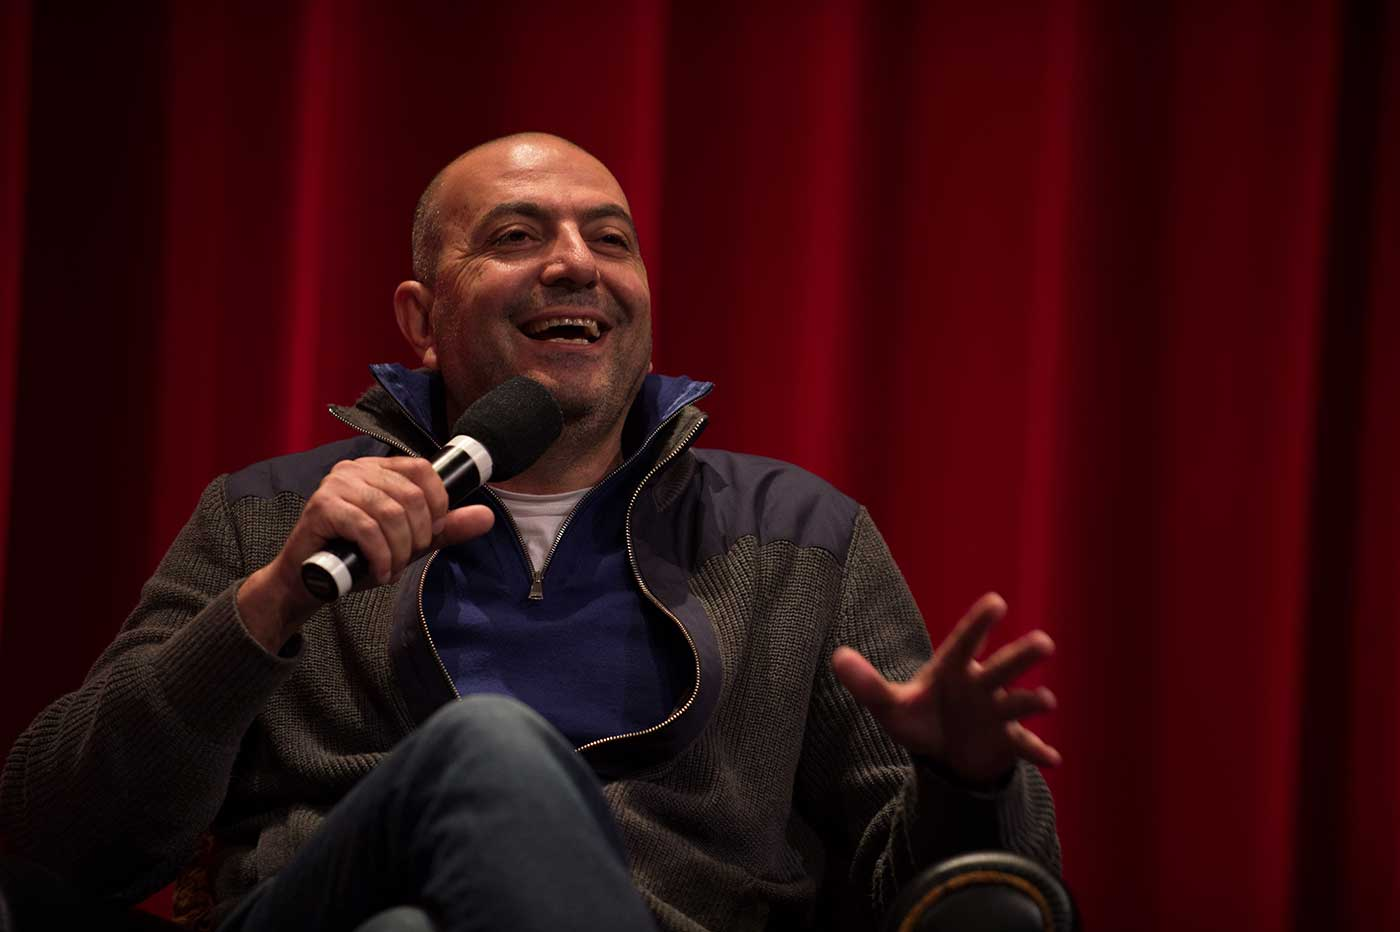 Director Hany Abu-Assad